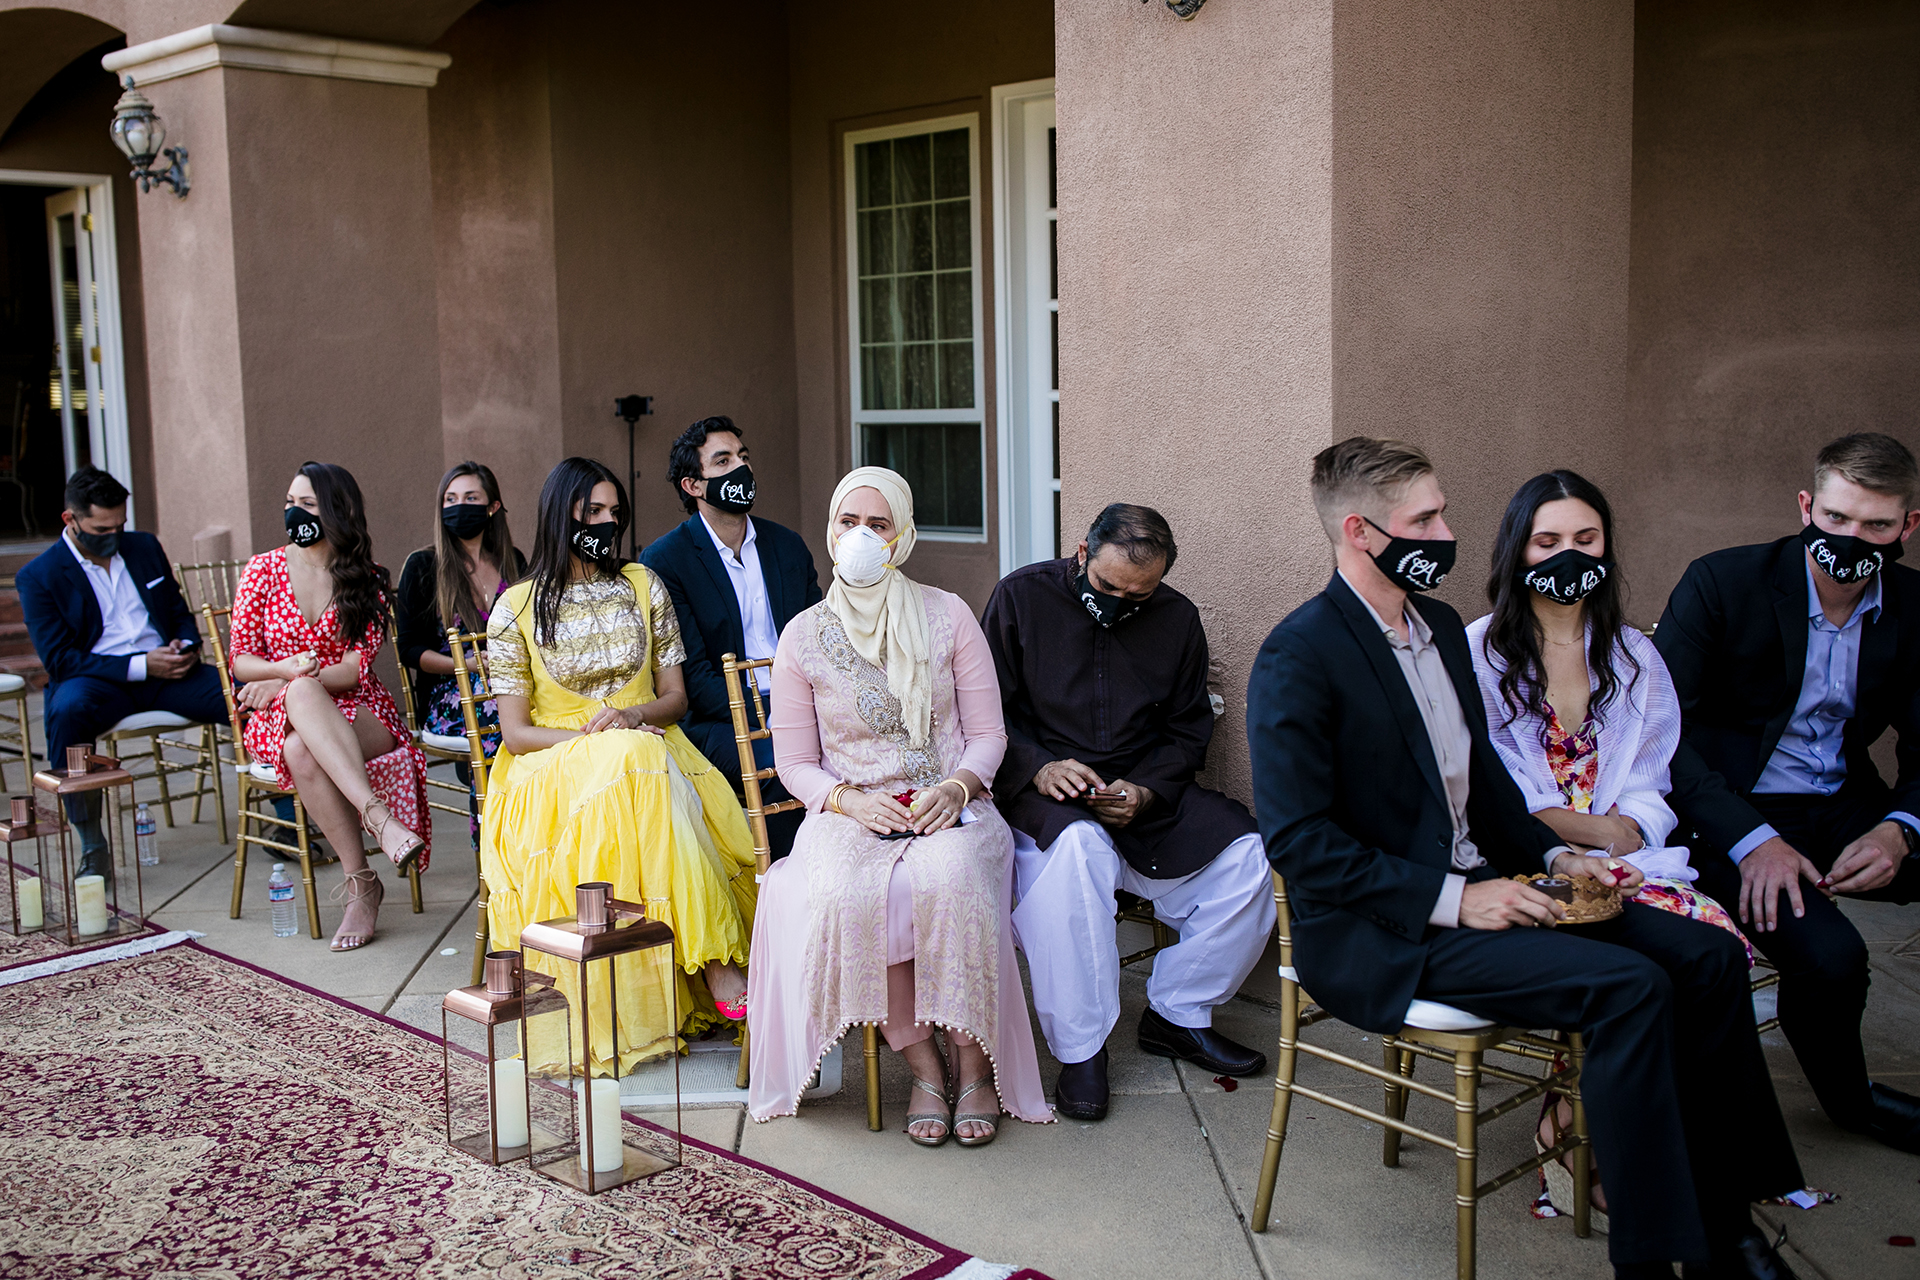 N California COVID-19 Elopement Photographer | The bride and groom gave everyone matching masks at the door